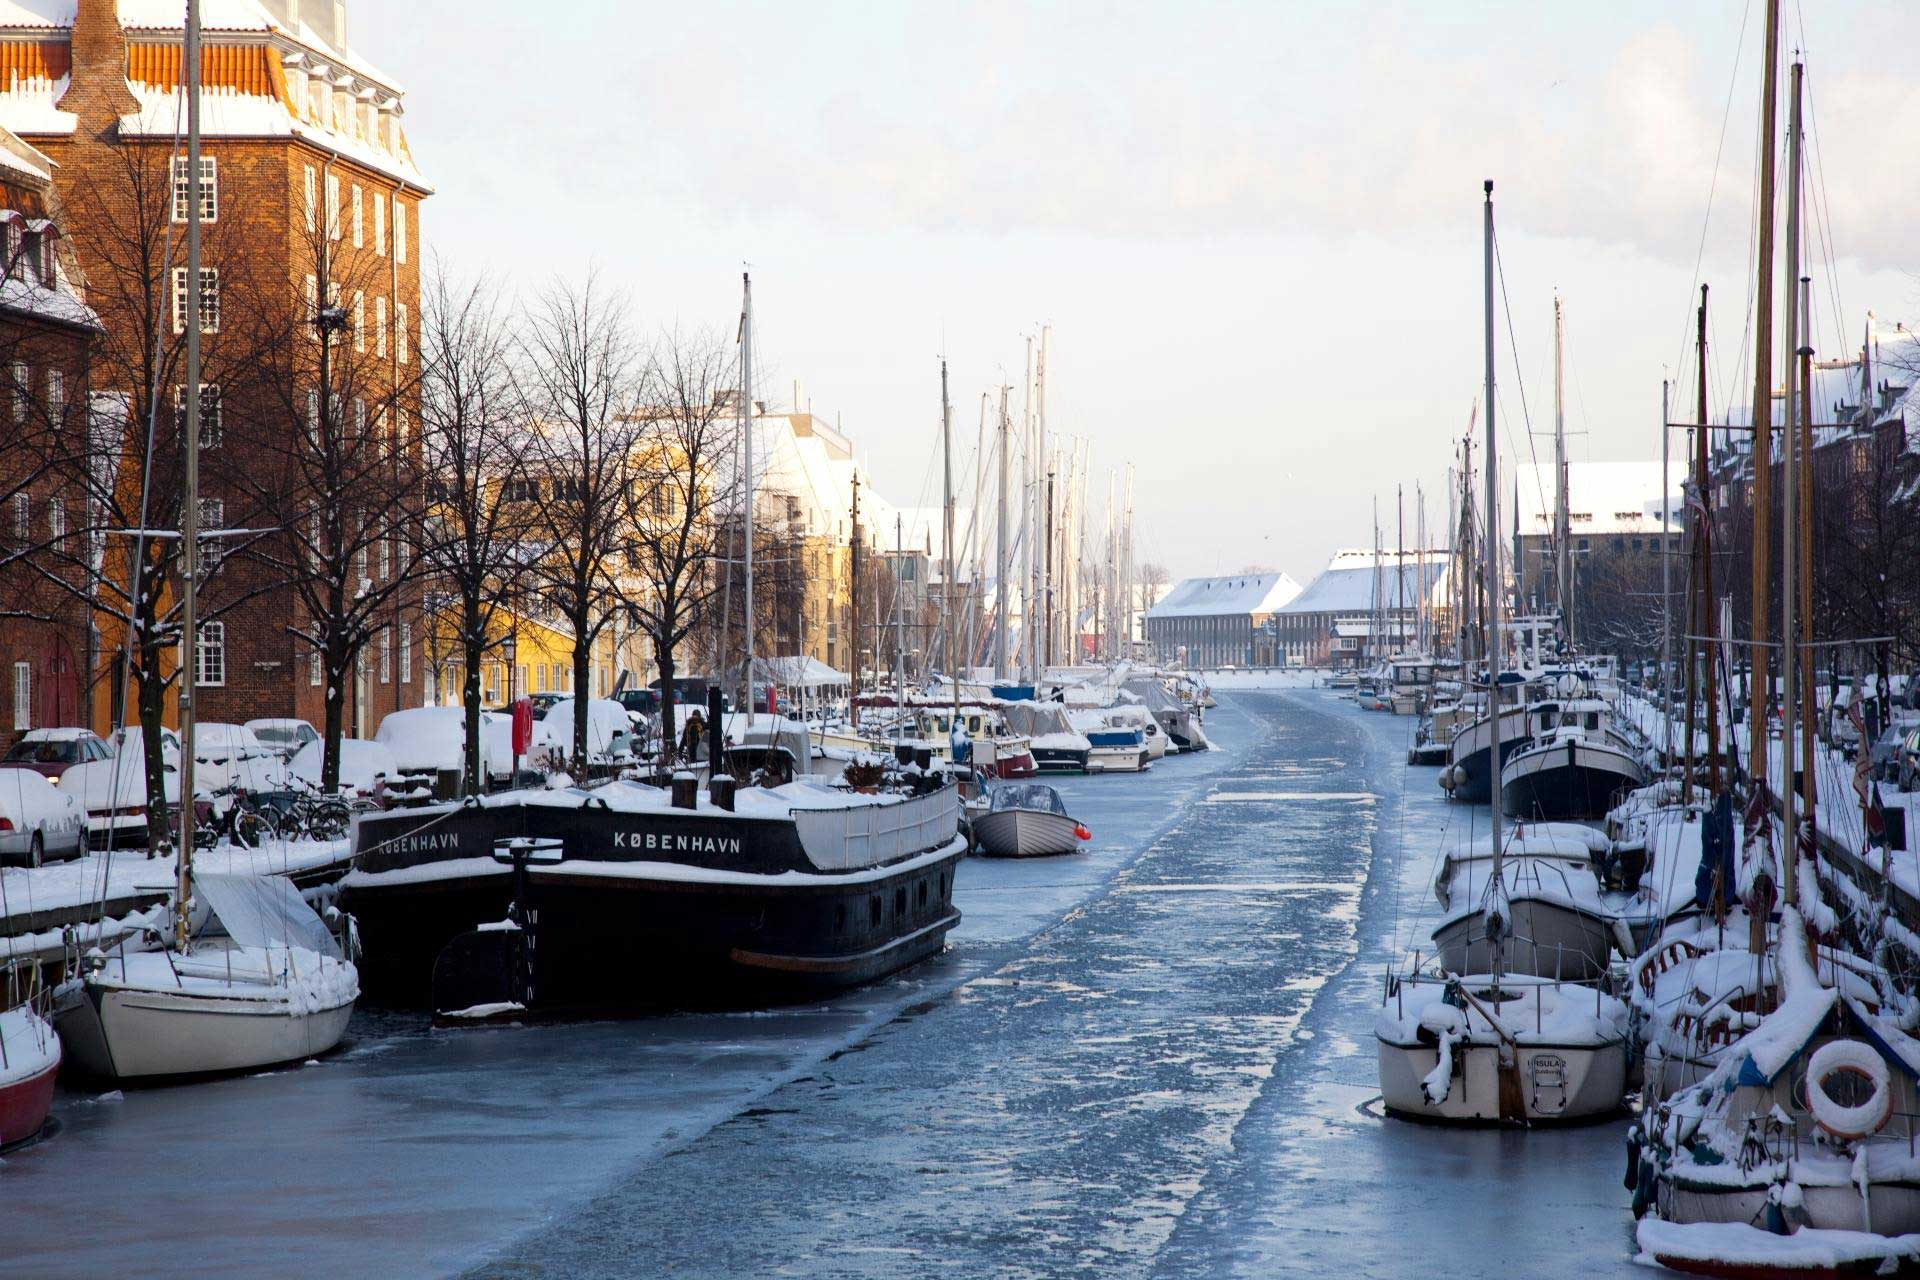 christianshavn canal in winter